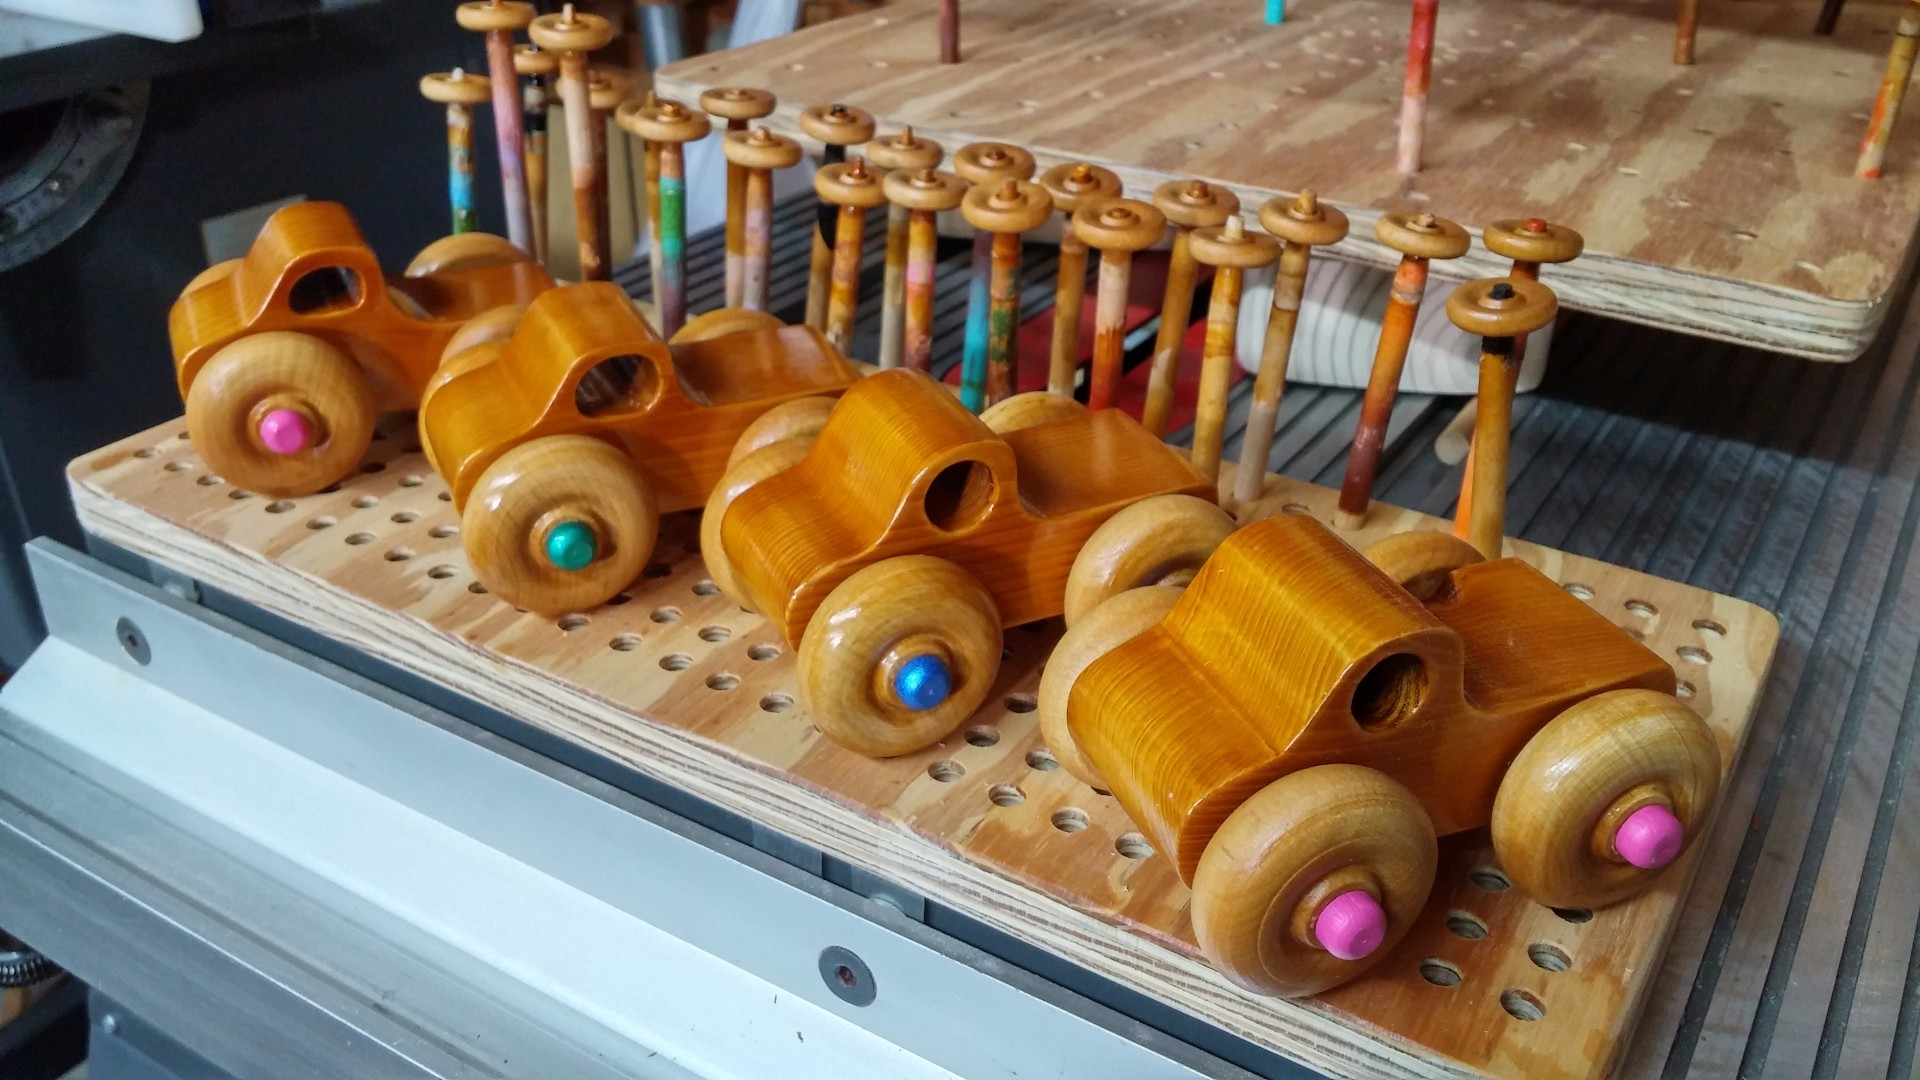 20170727_205628_HDR Wooden Toy Monster Trucks With Axels Pined.jpg